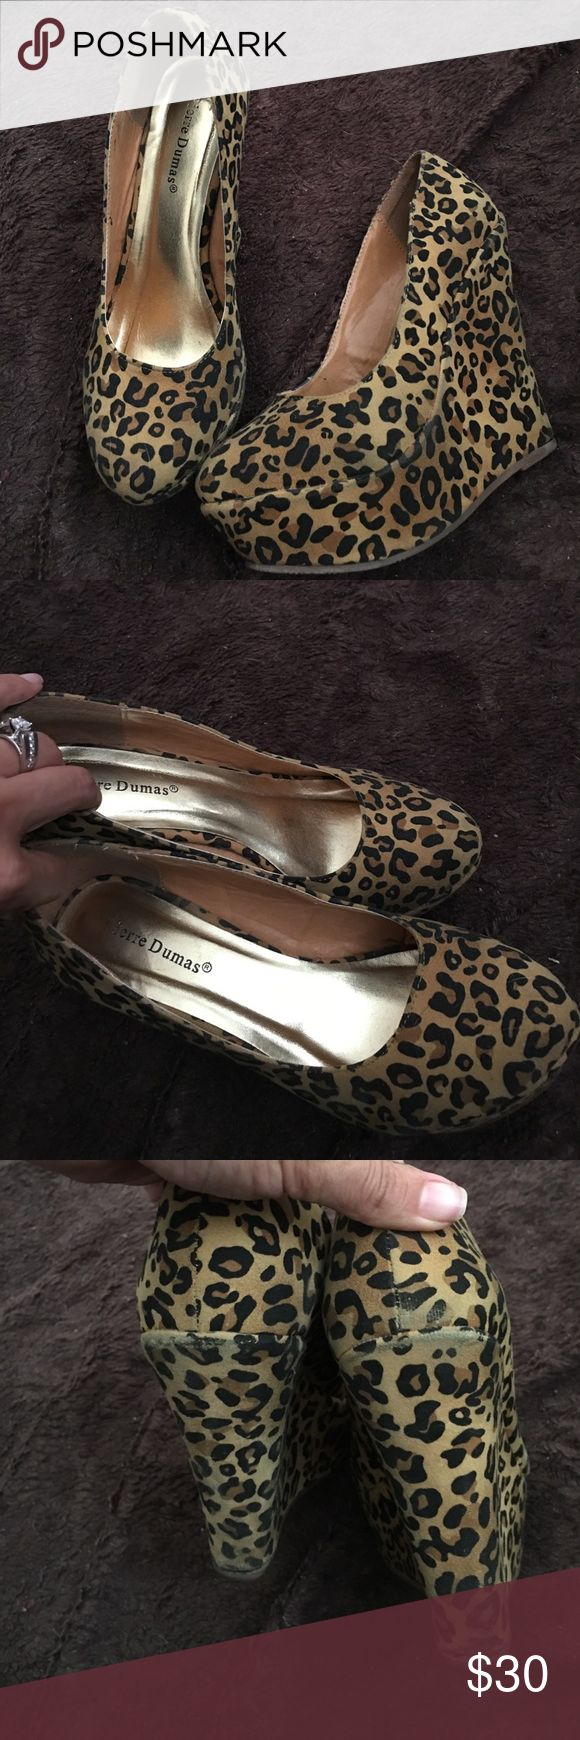 Leopard Print Wedges Fun and cute wedges... some wear on shoe from jeans rubbing. Please see pics . Priced accordingly Pierre Dumas Shoes Wedges